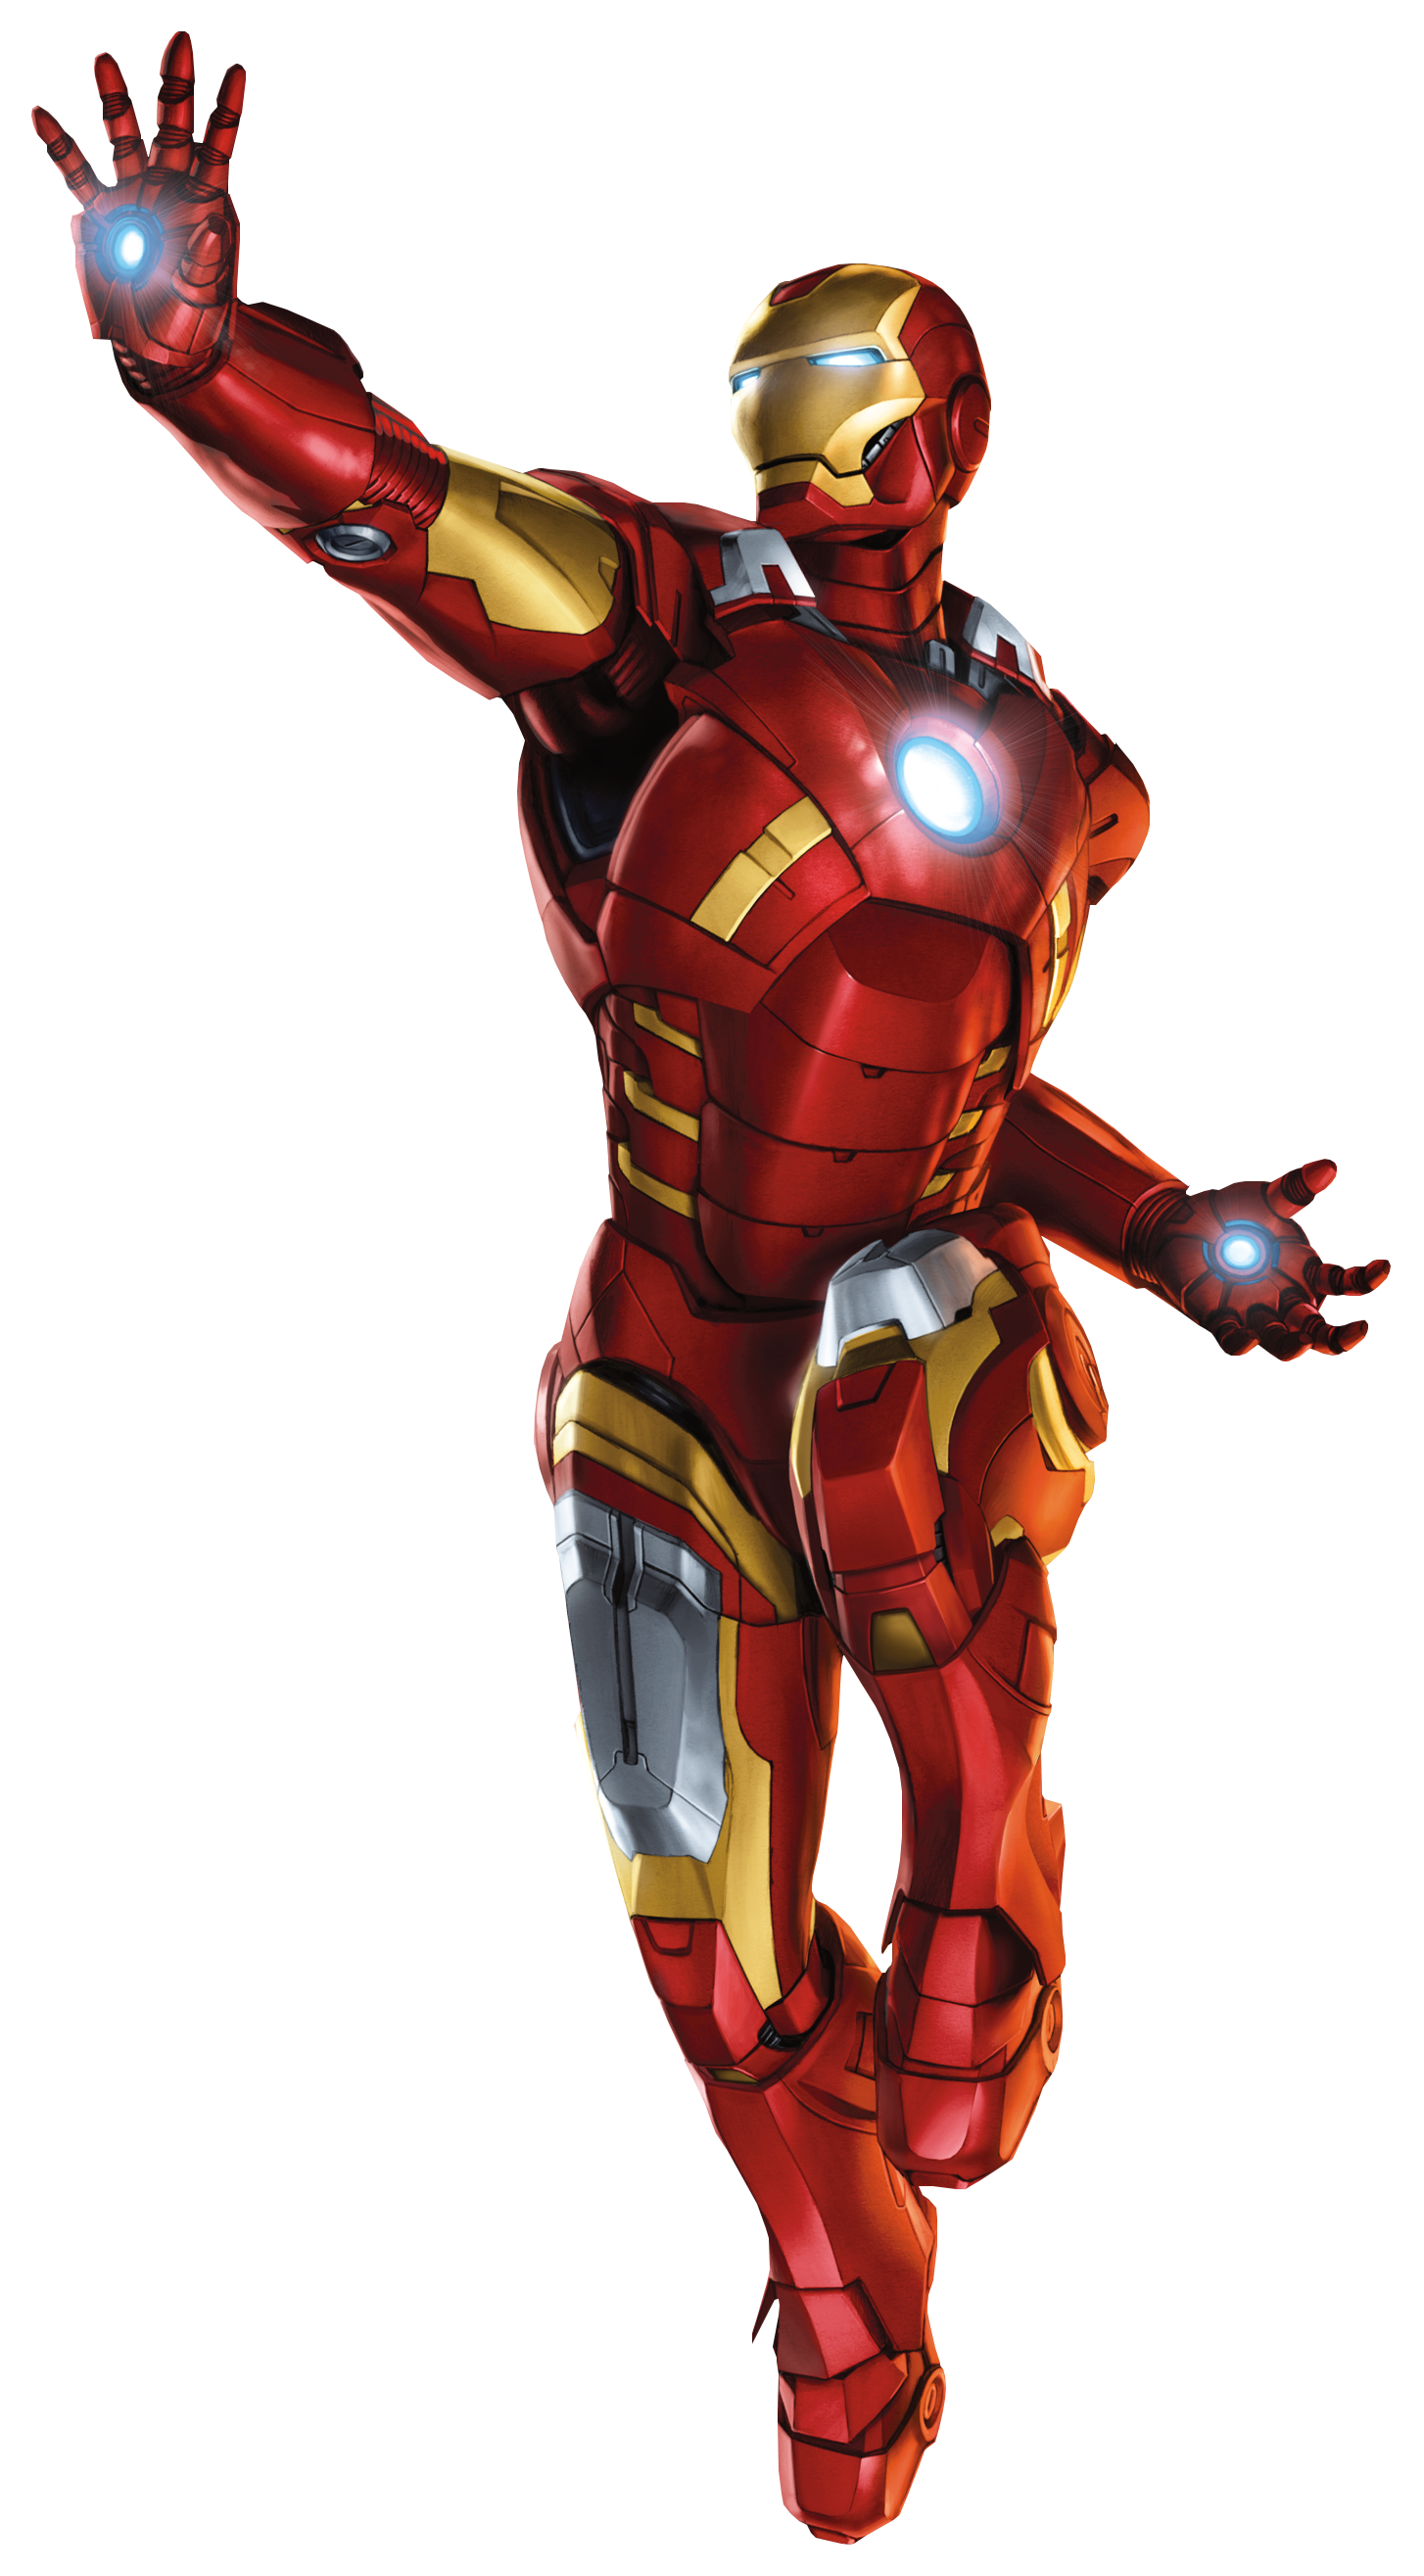 image sjpa iron man disney wiki fandom powered by wikia. Black Bedroom Furniture Sets. Home Design Ideas